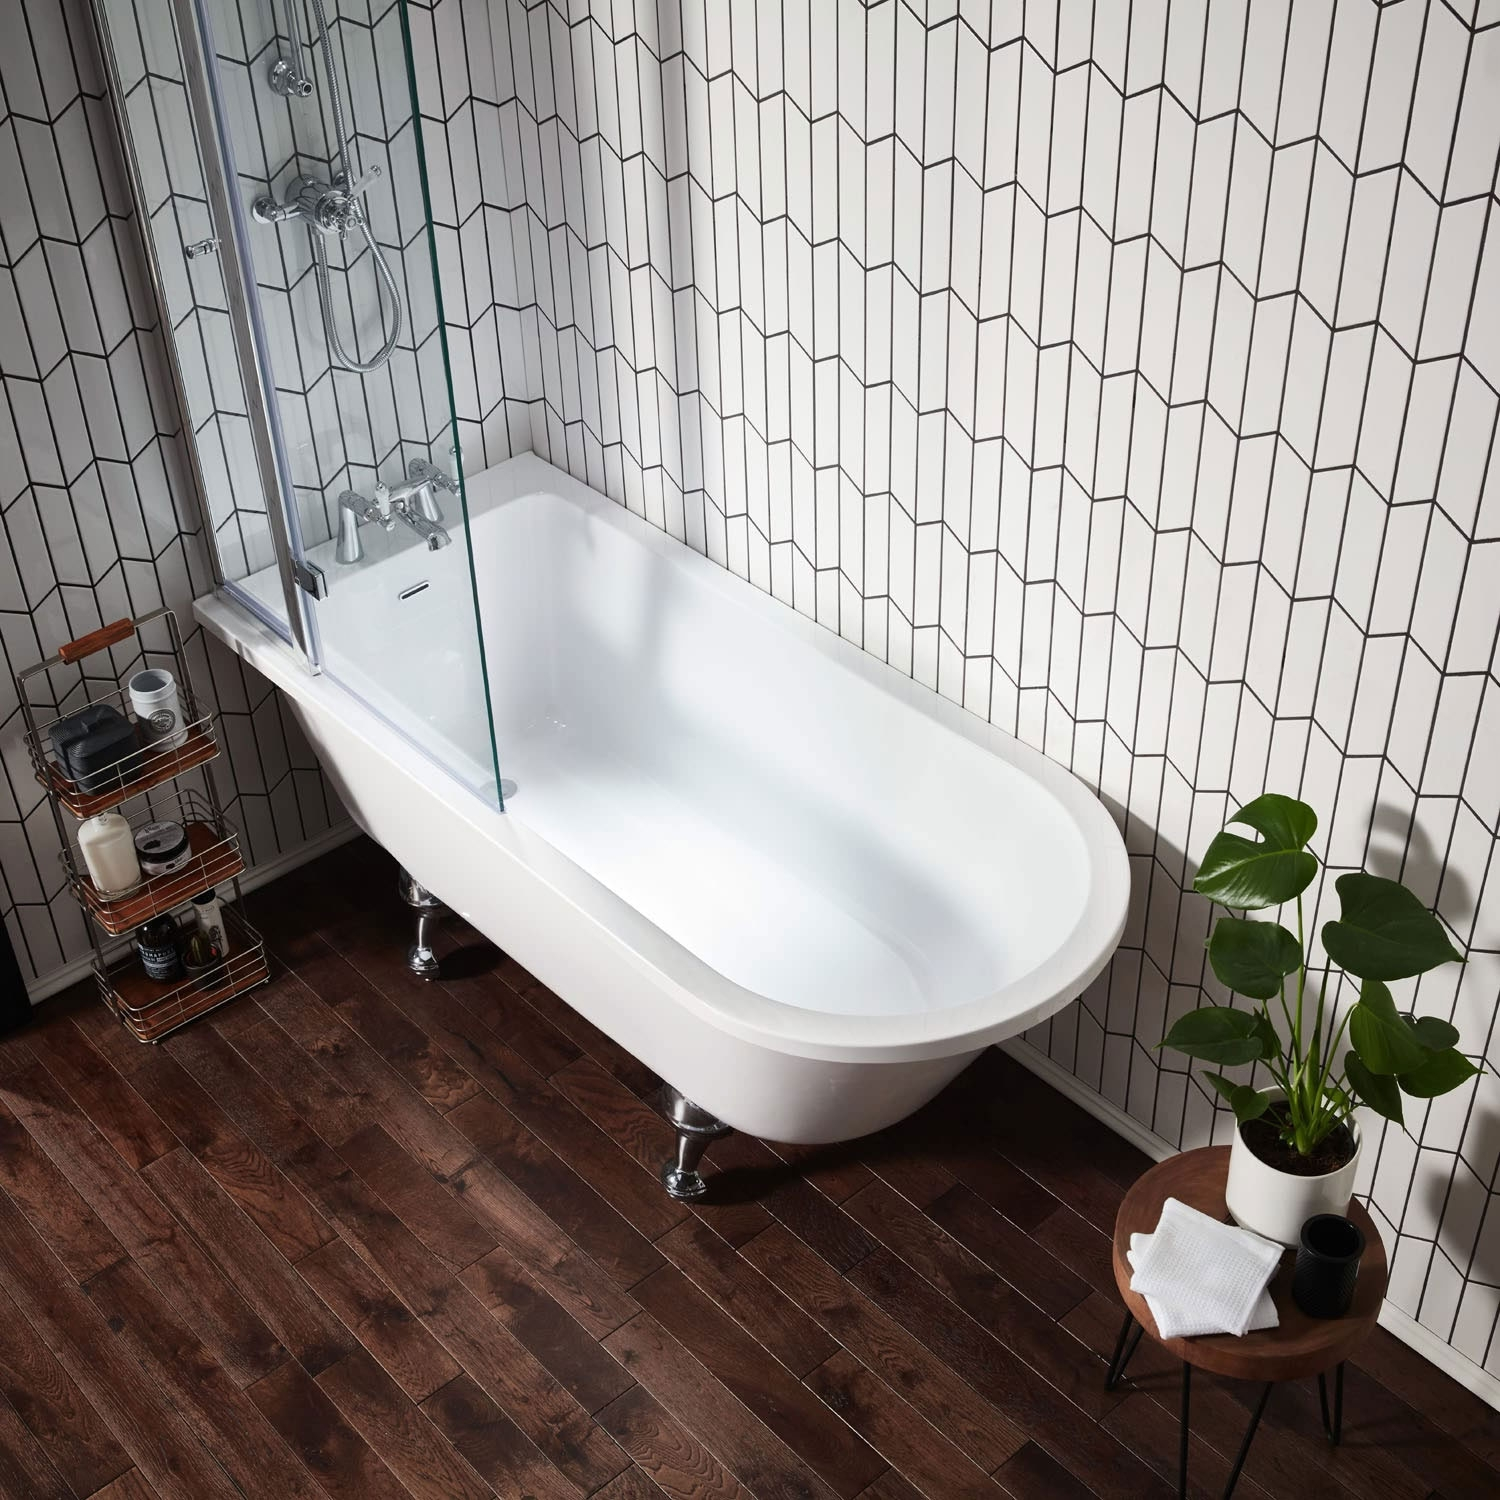 Verona Islington Bath Screen with Flipper Panel 1450mm High x 850mm Wide - Clear Glass